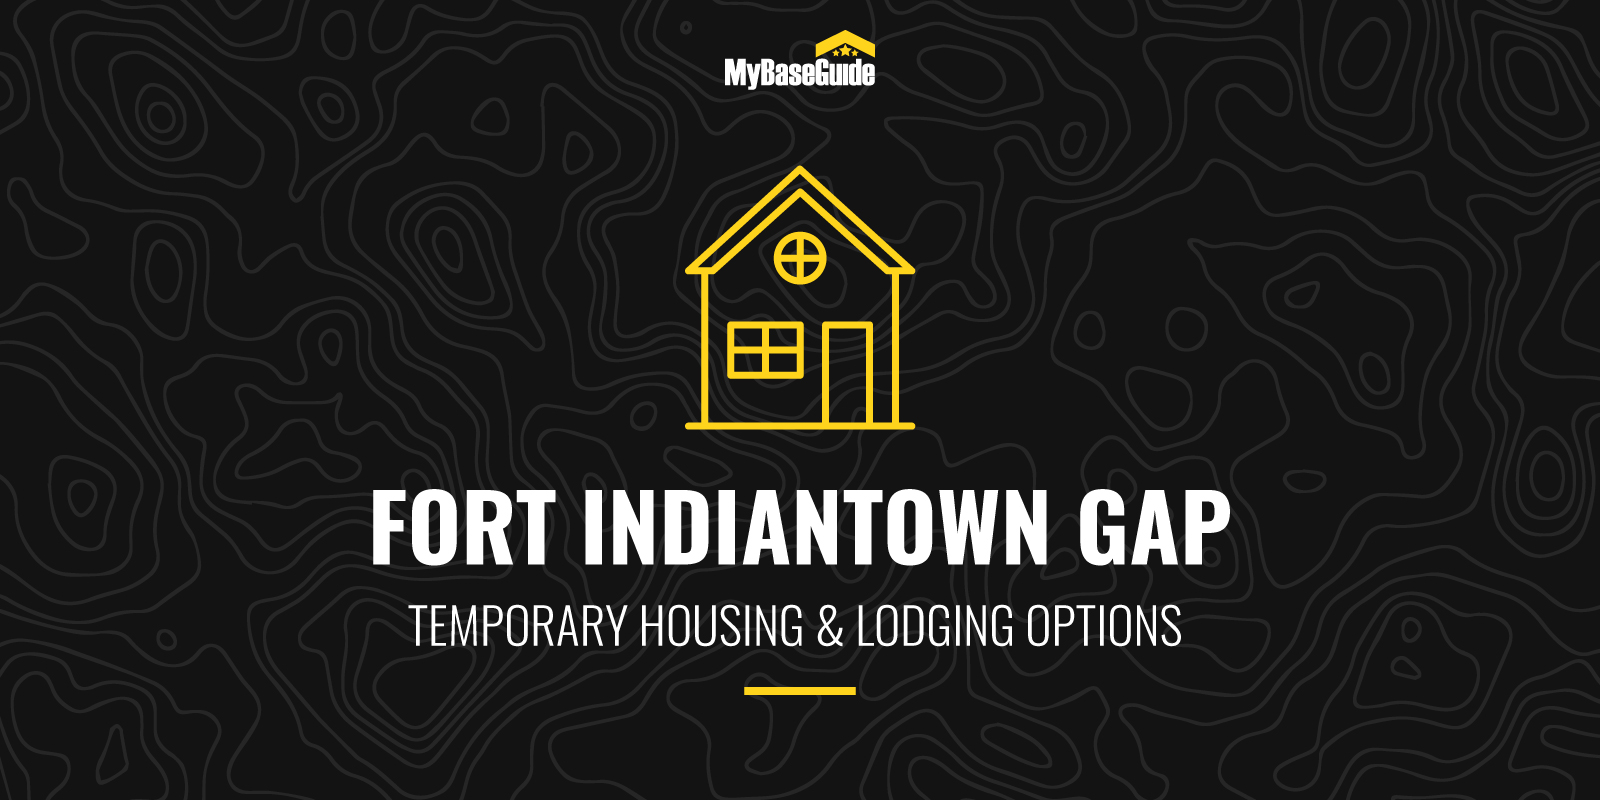 Fort Indiantown Gap Temporary Housing & Lodging Options